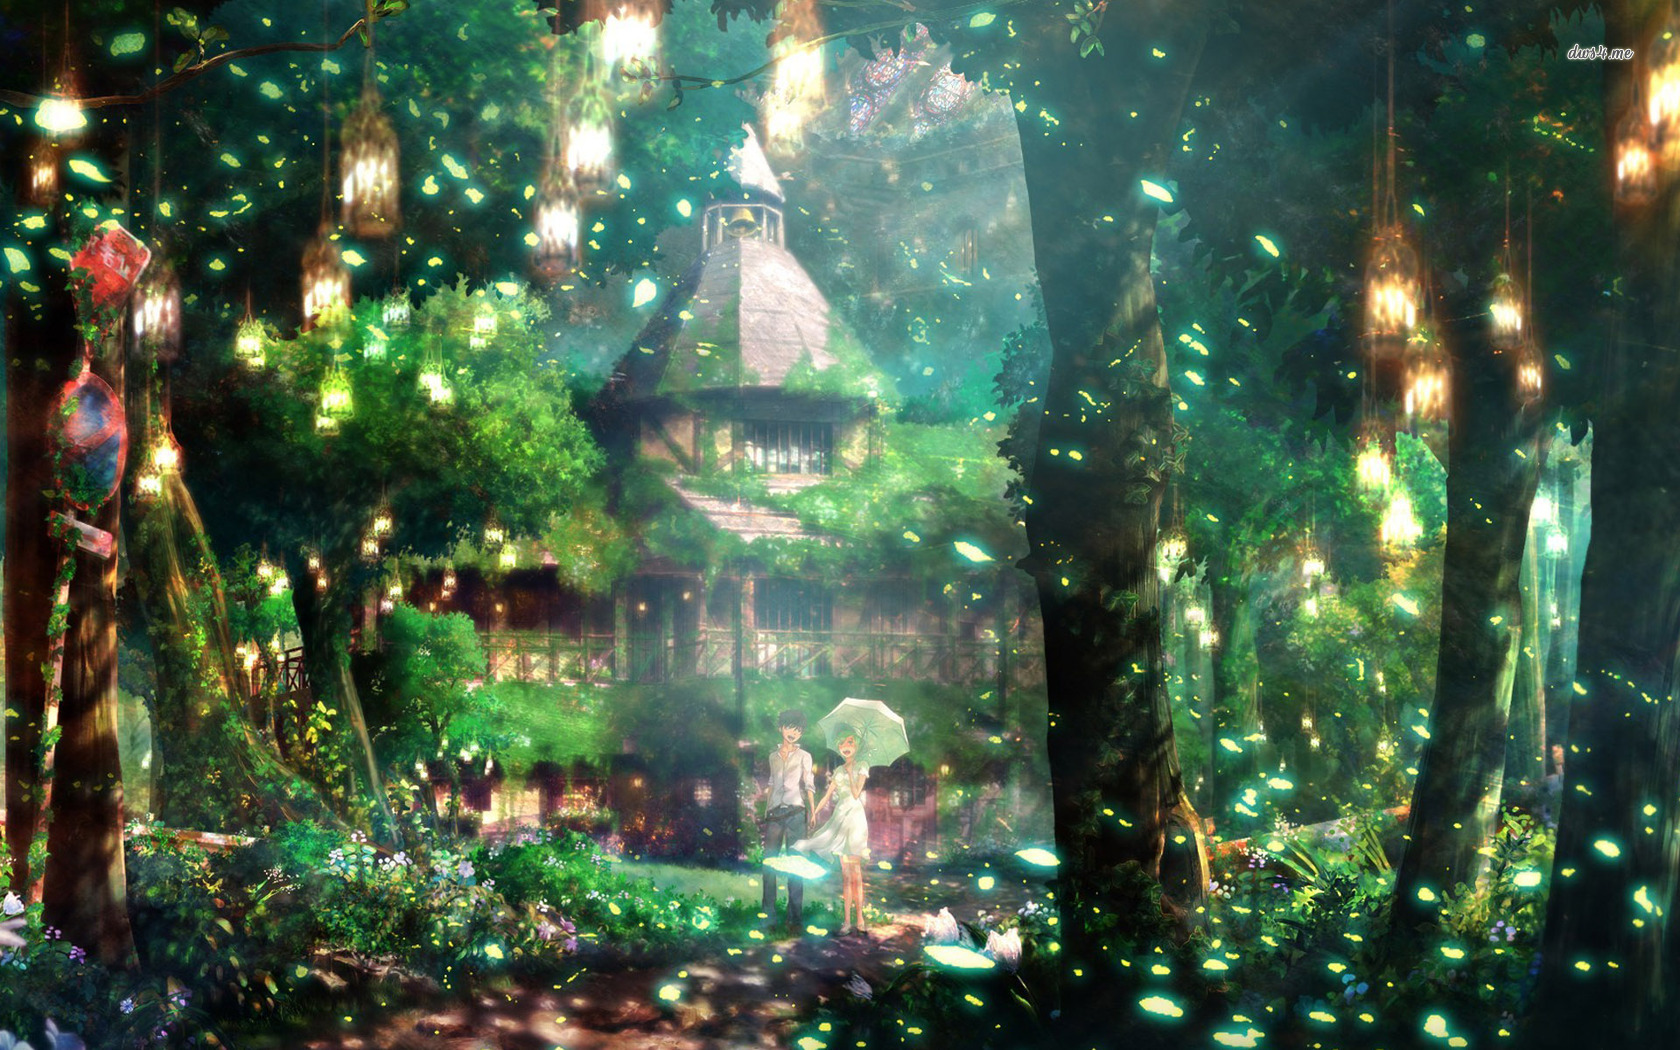 Magical forest wallpaper   Anime wallpapers   8608 1680x1050